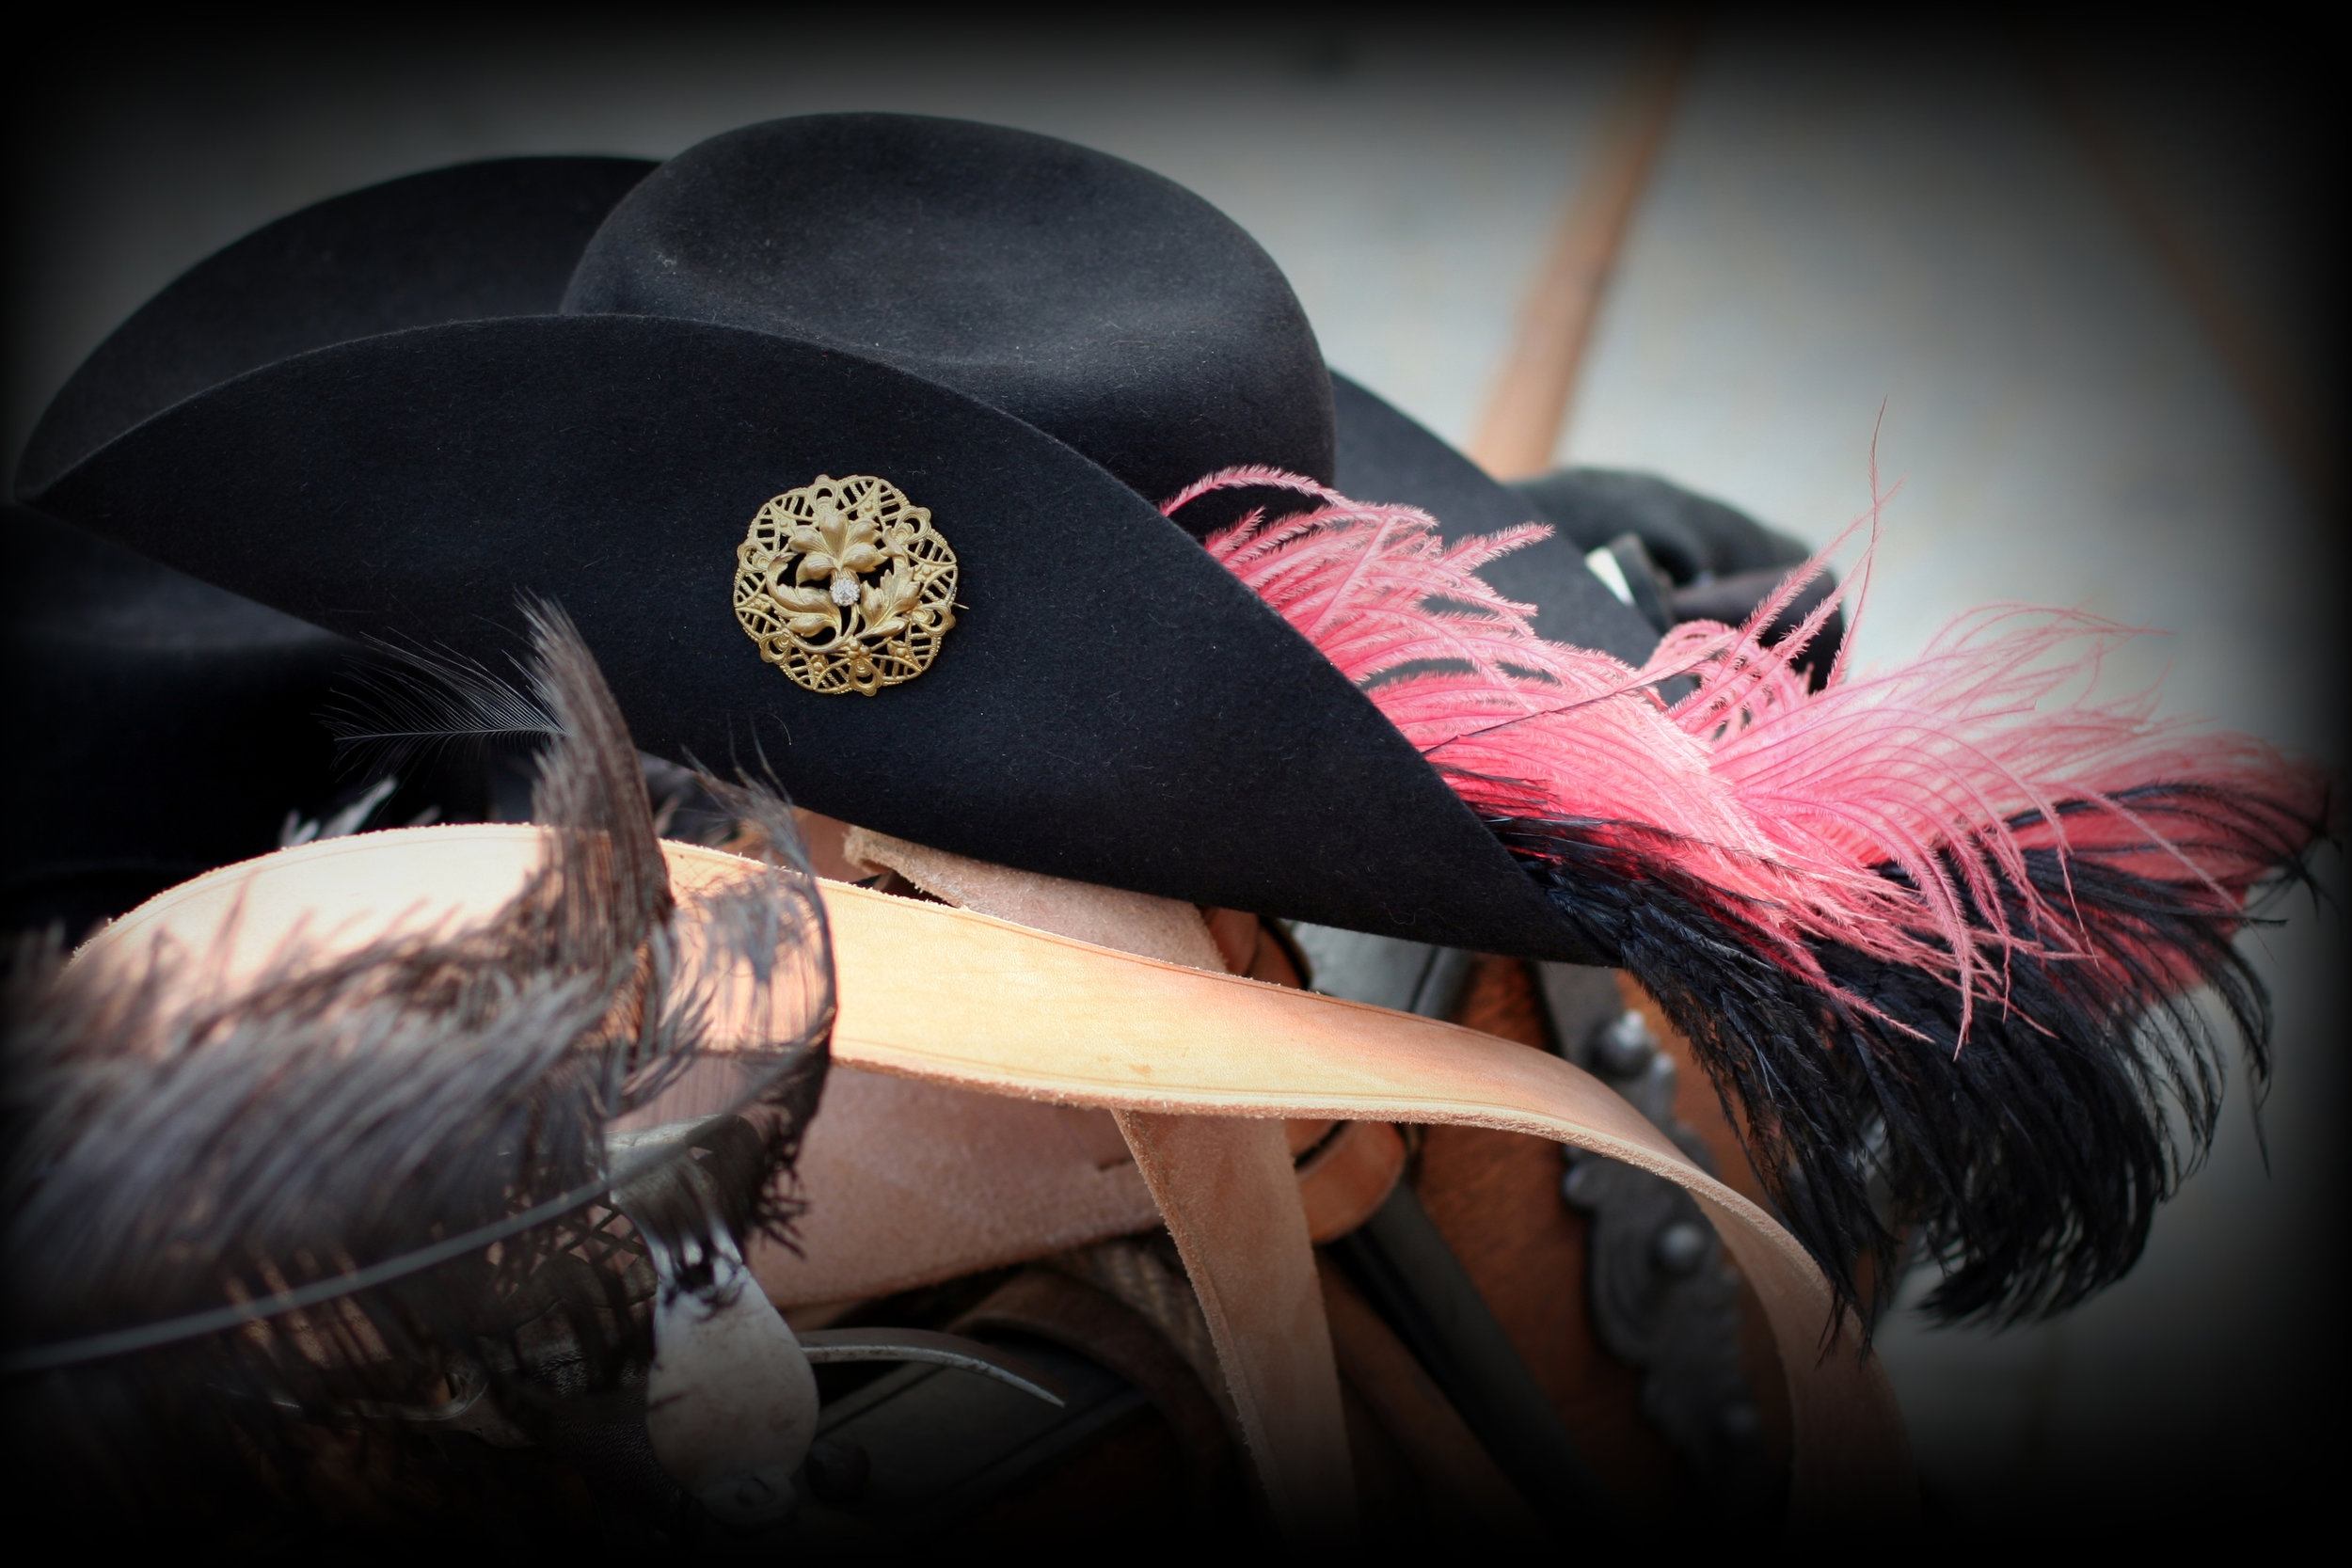 A fine hat resting on a sword baldric.